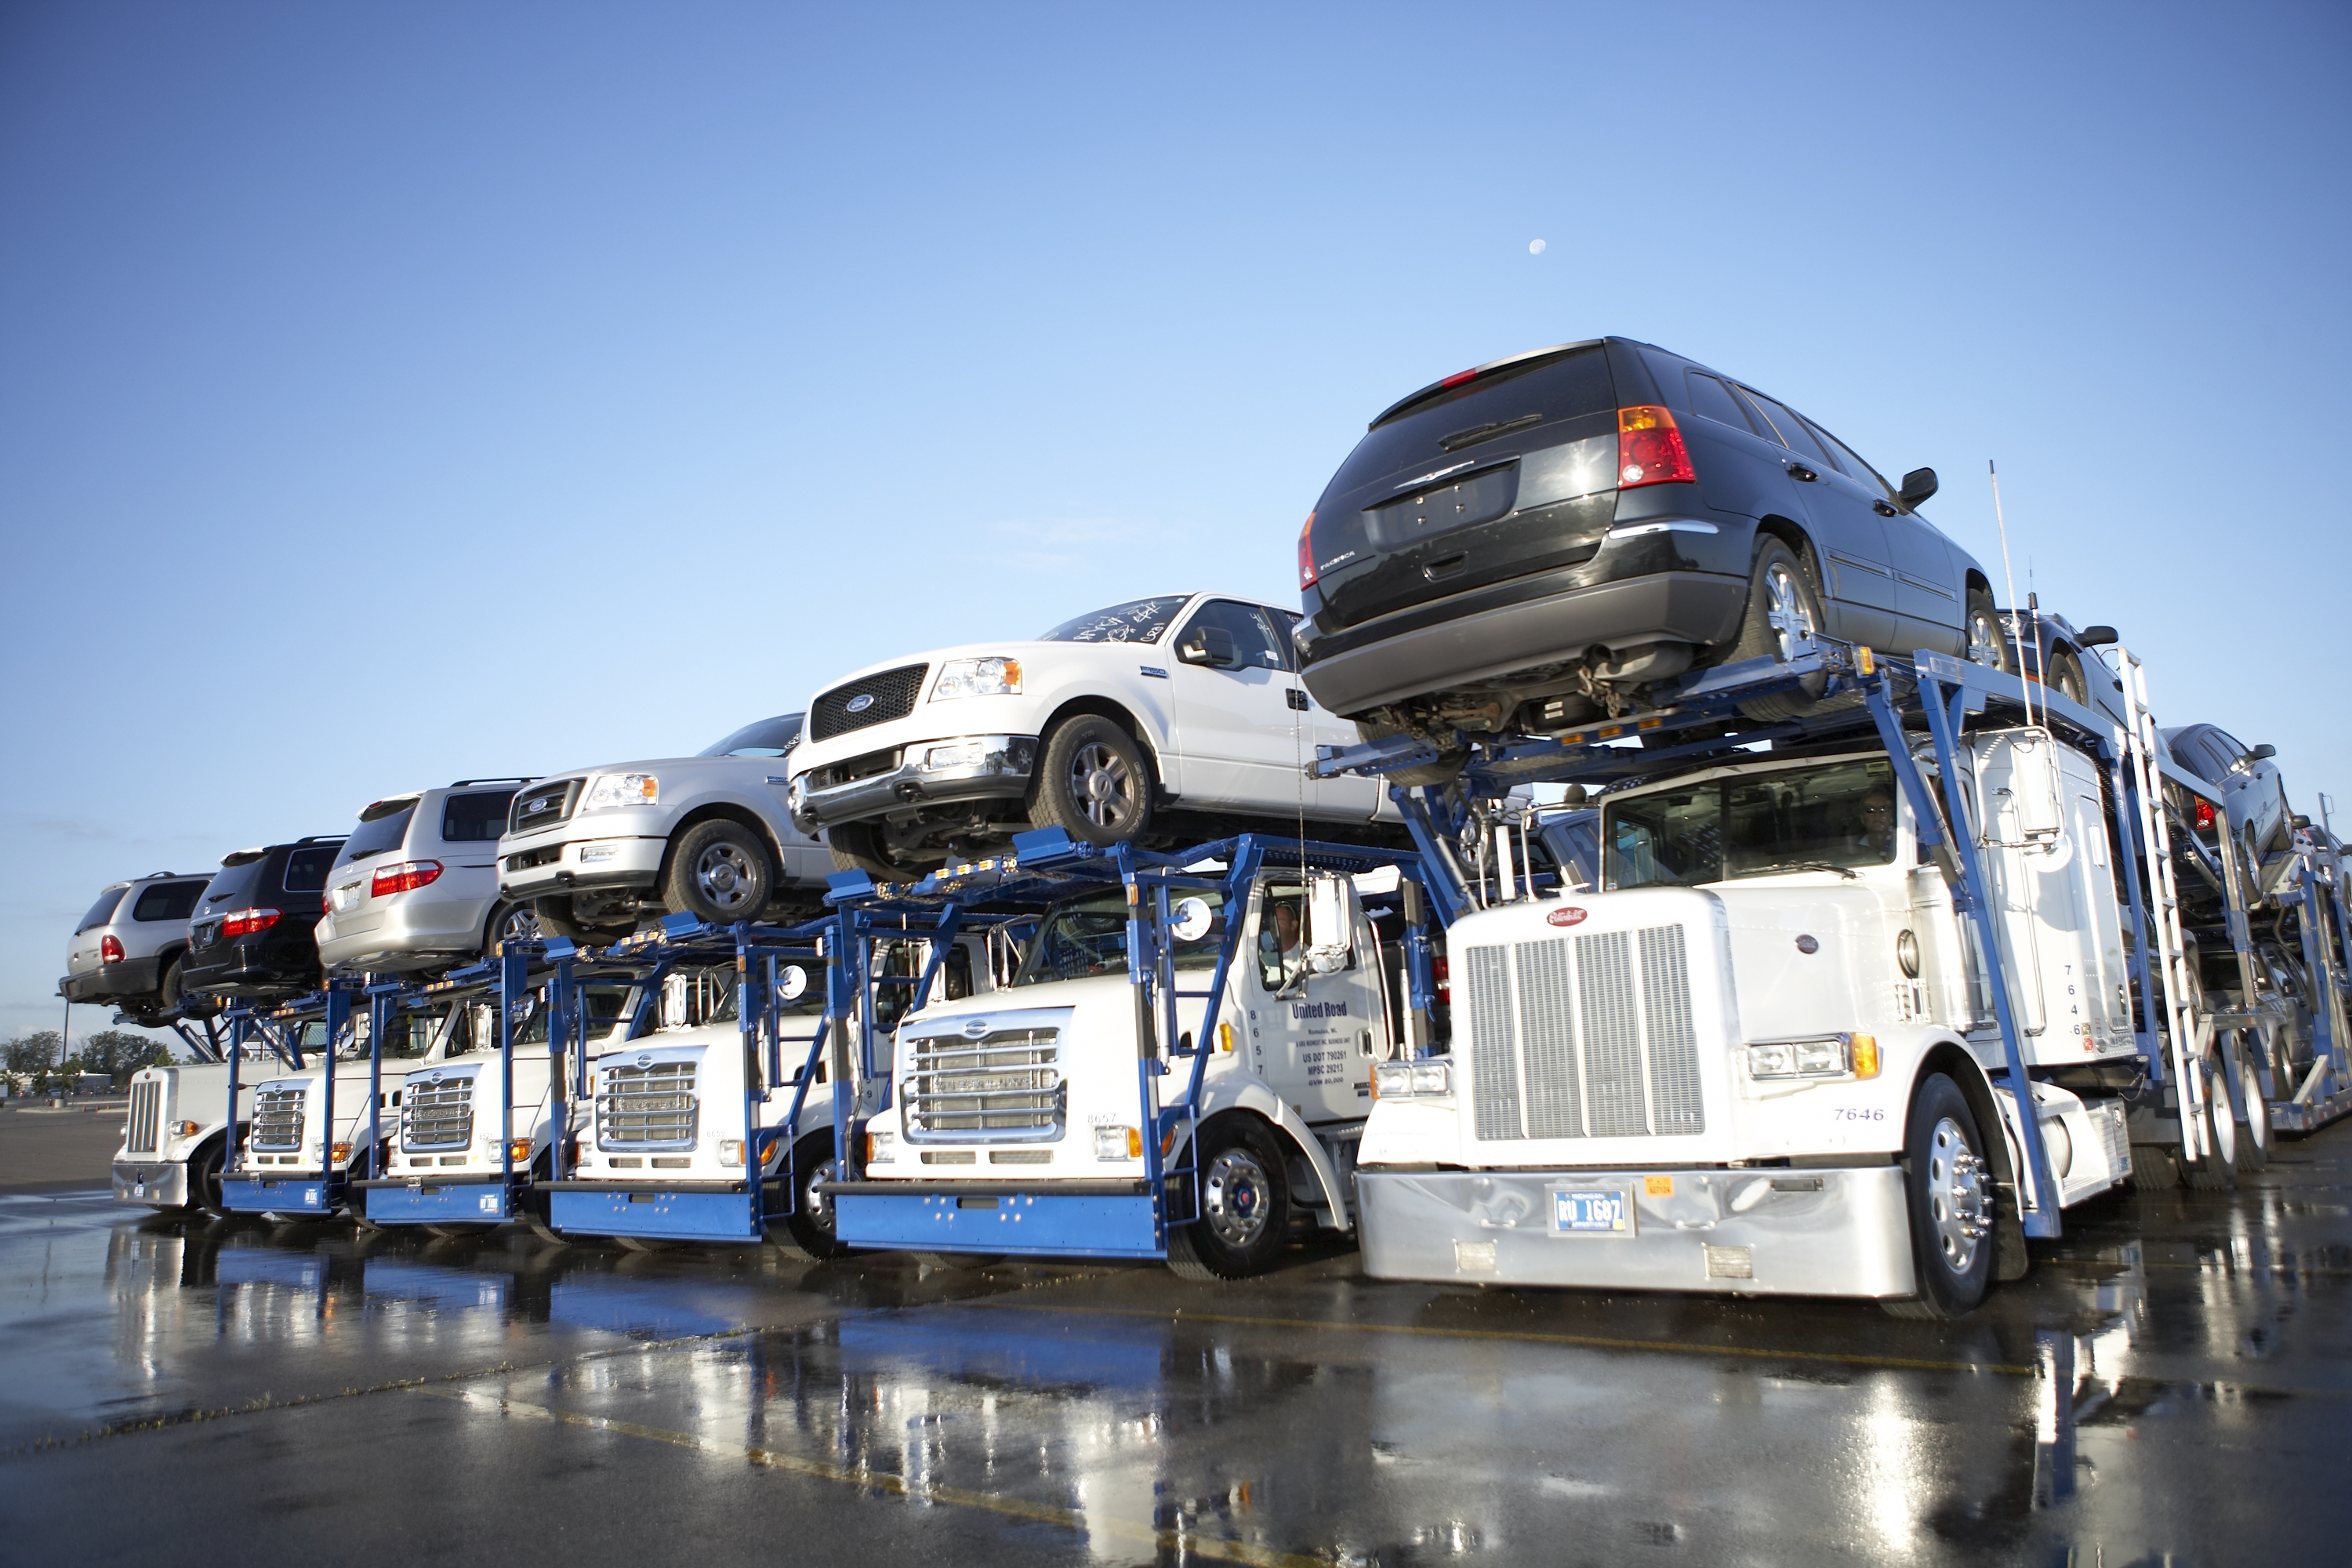 Auto Transport Quotes New York & New York City Auto Transport